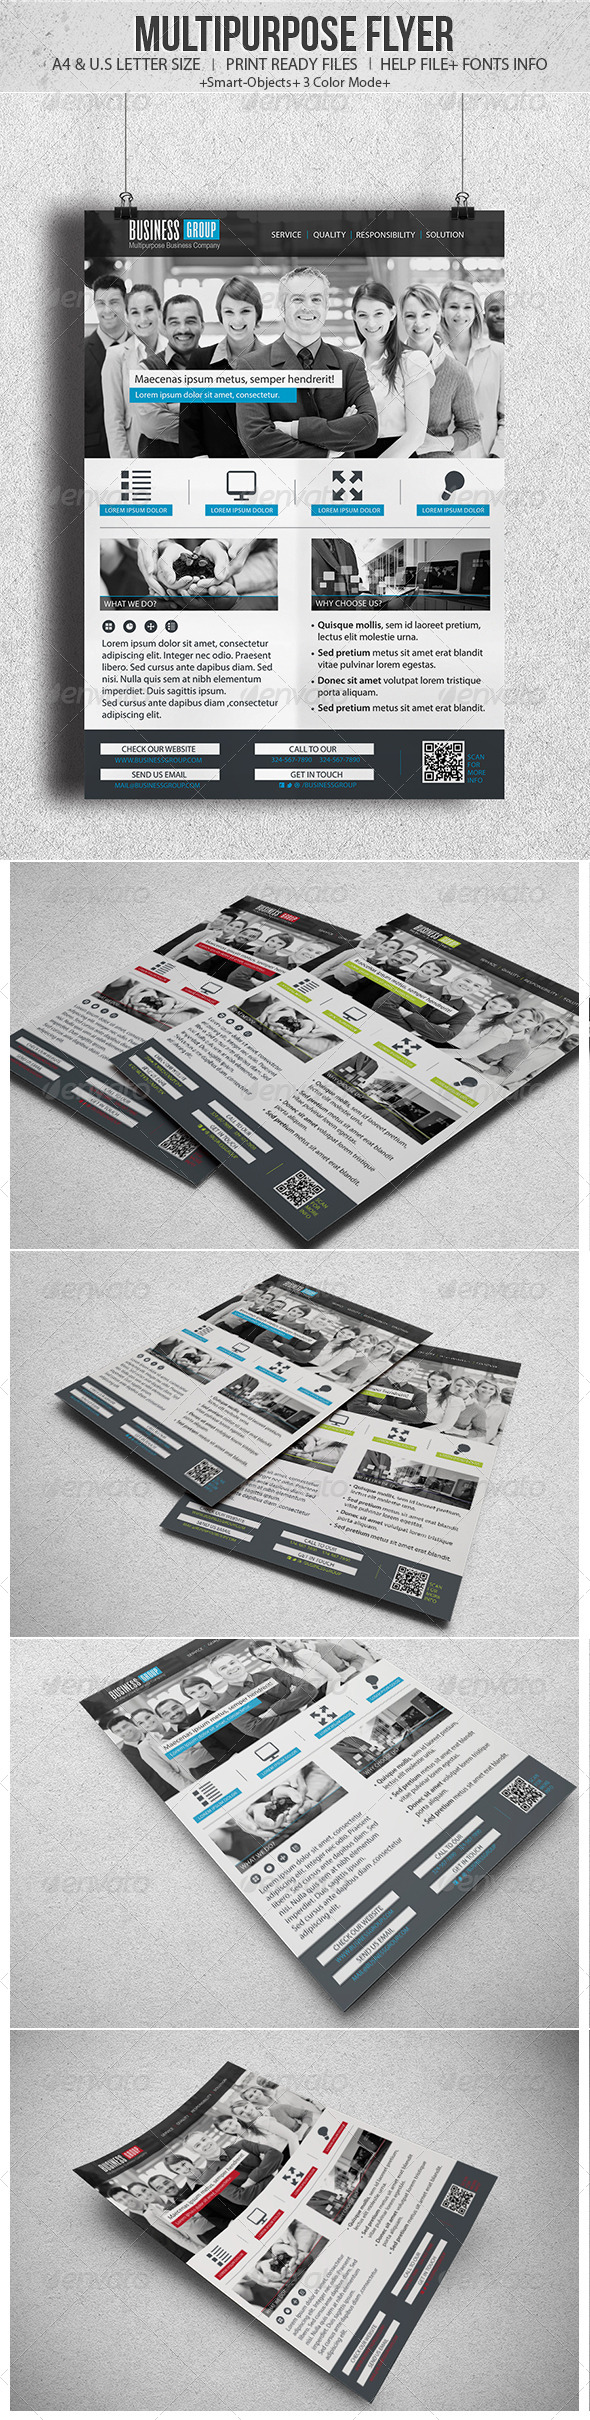 GraphicRiver Multipurpose Flyer 4421111